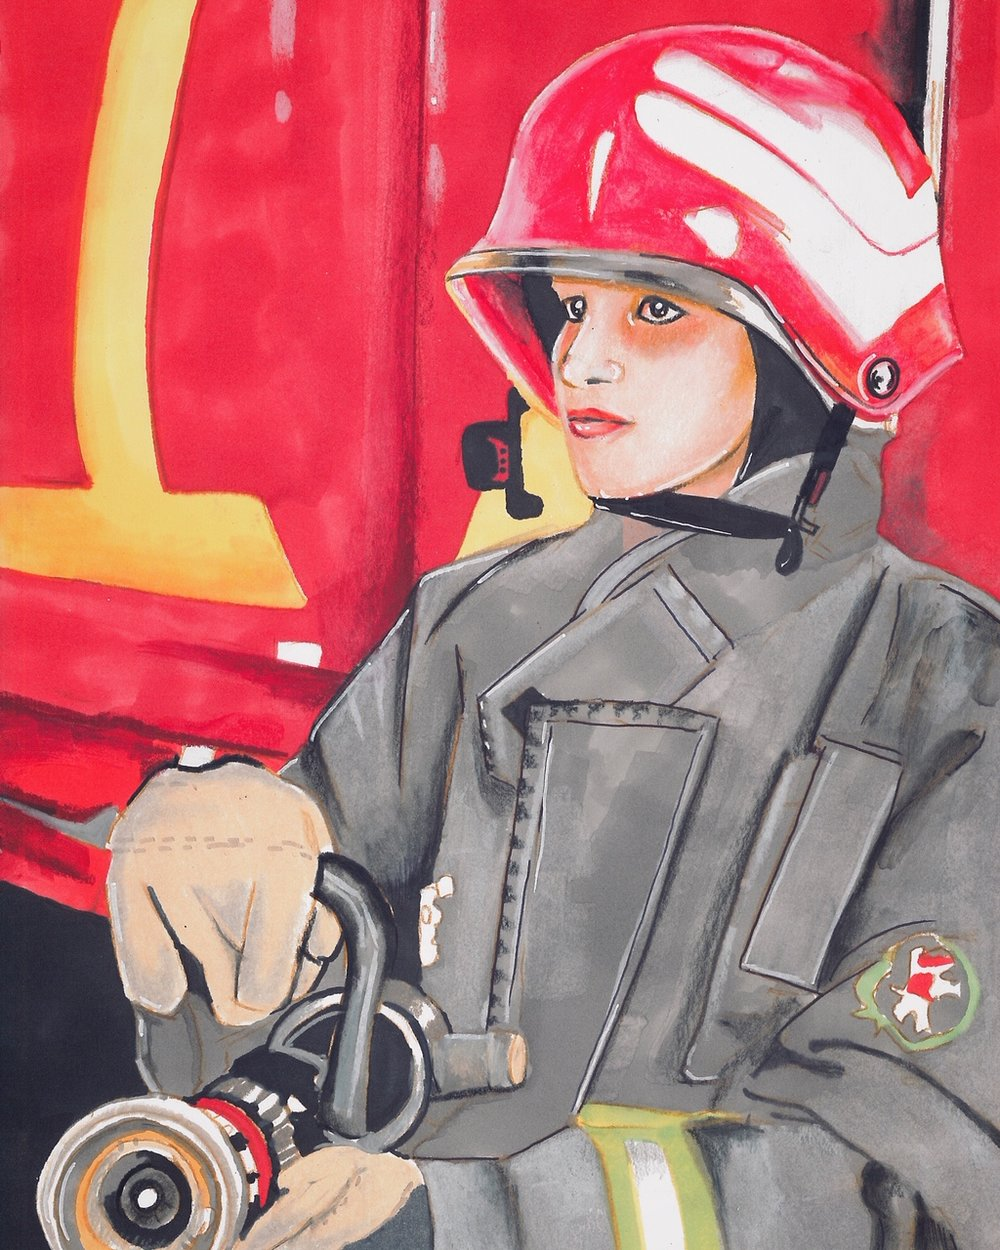 Shazia Parveen: First female firefighter of Pakistan. (Courtesy of Maliha Abidi)